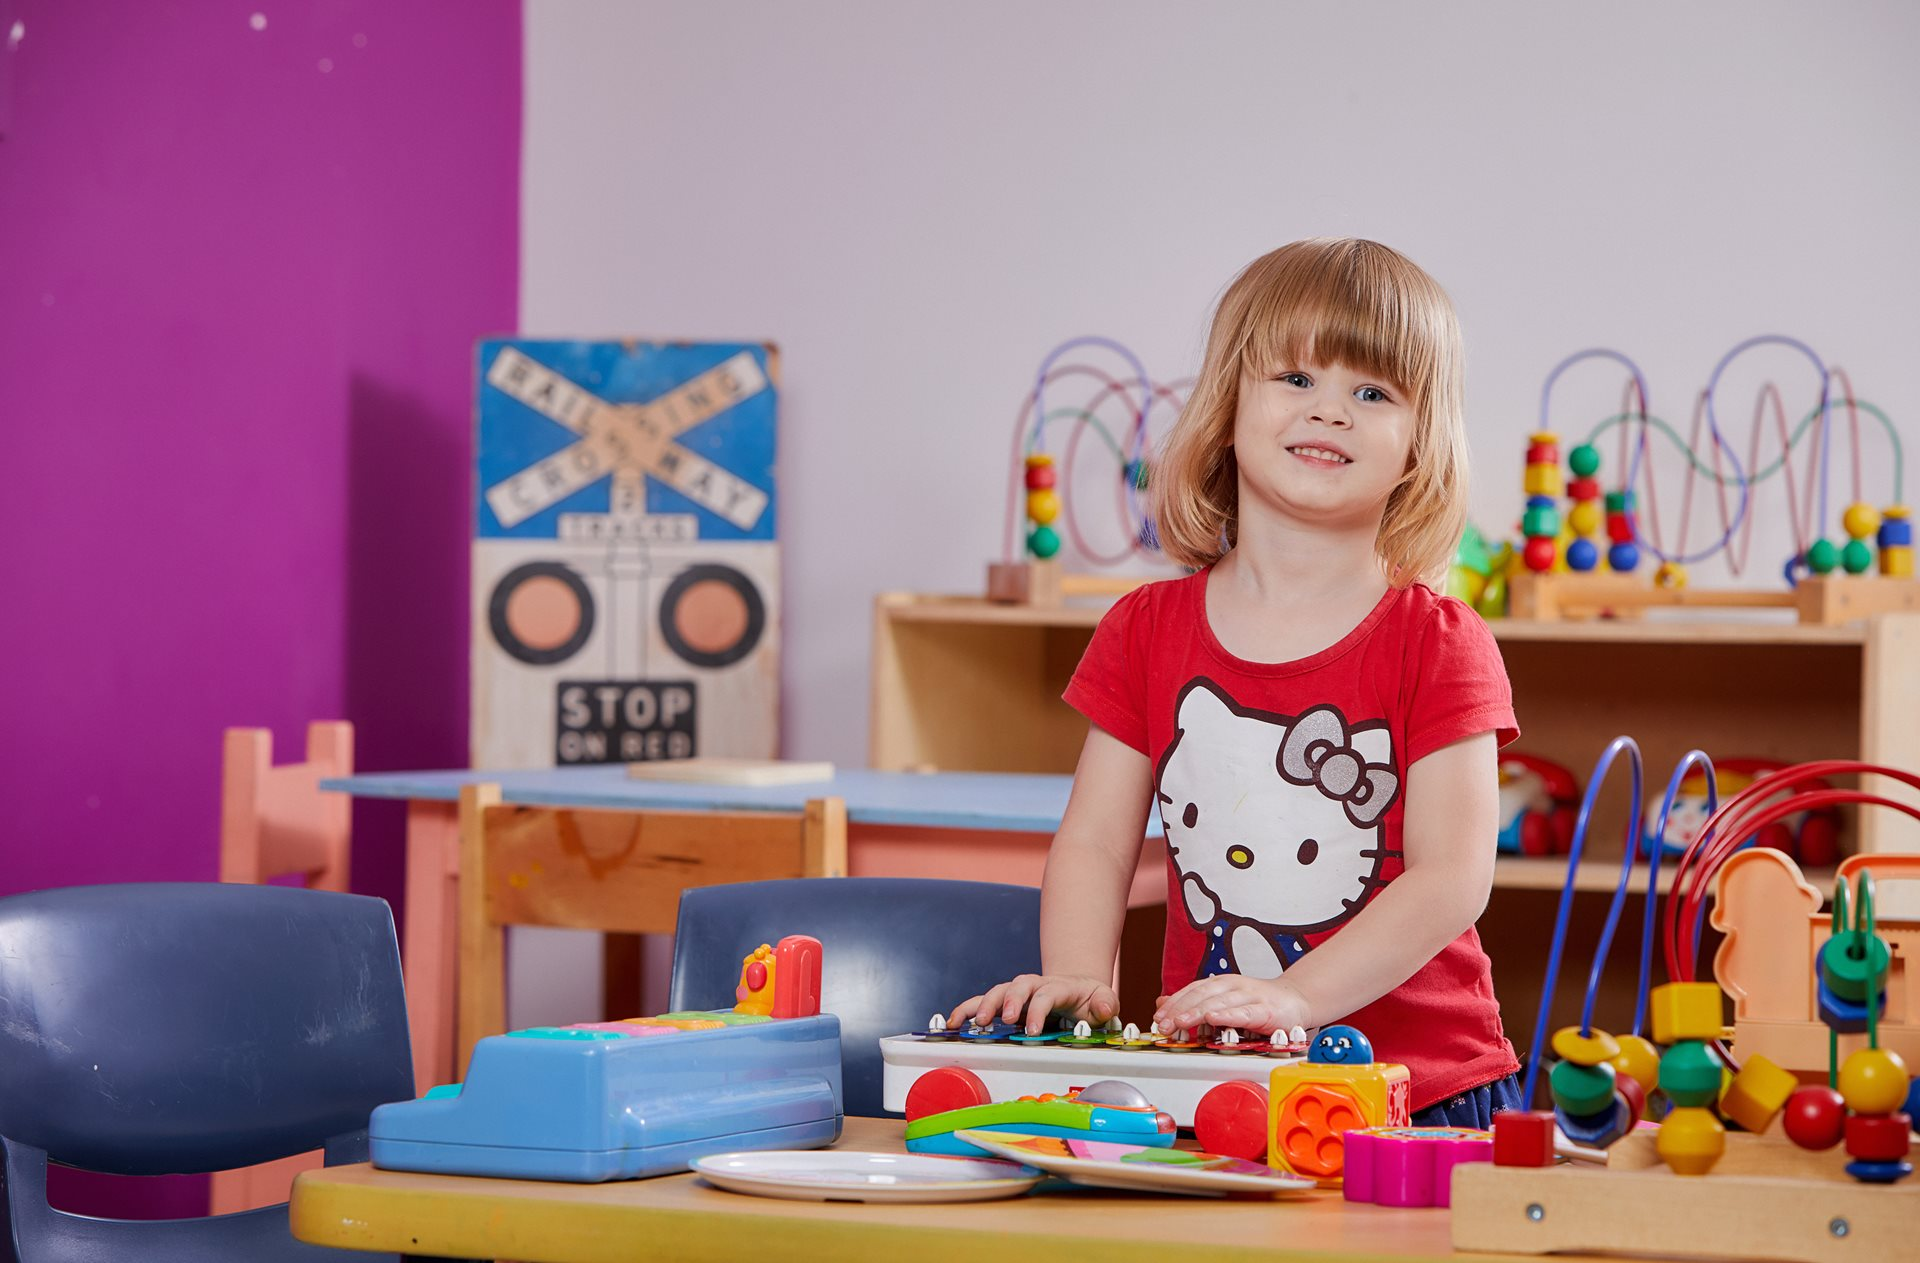 Smiling child in classroom playing with toys on table